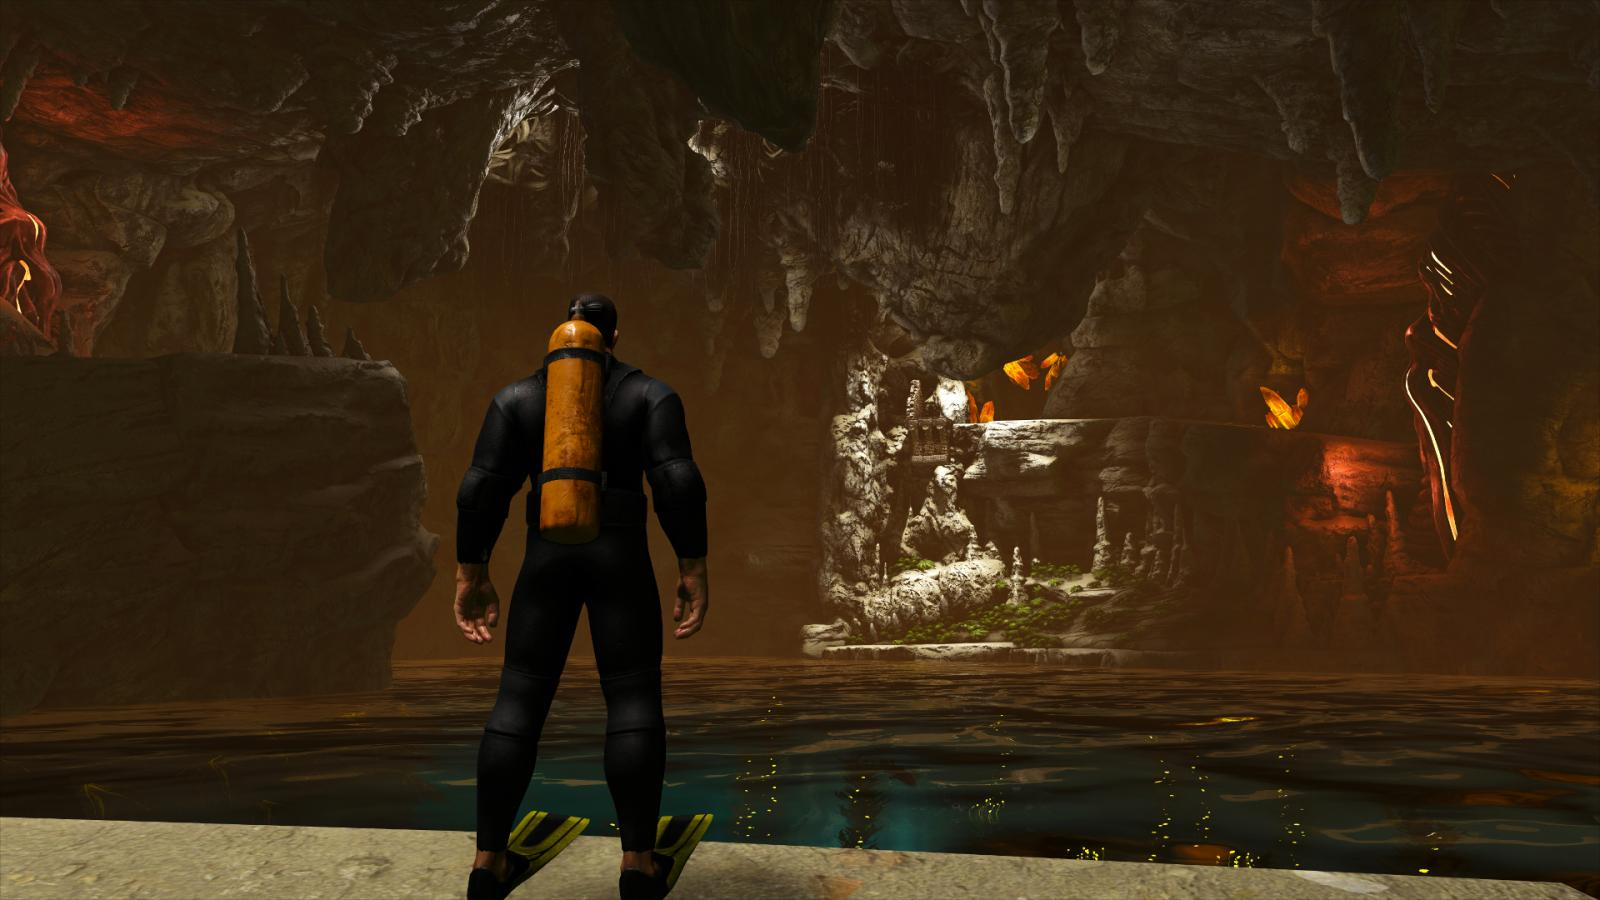 large.5866f3162aff9_NakedZombo-CaveExploration-STA.jpg